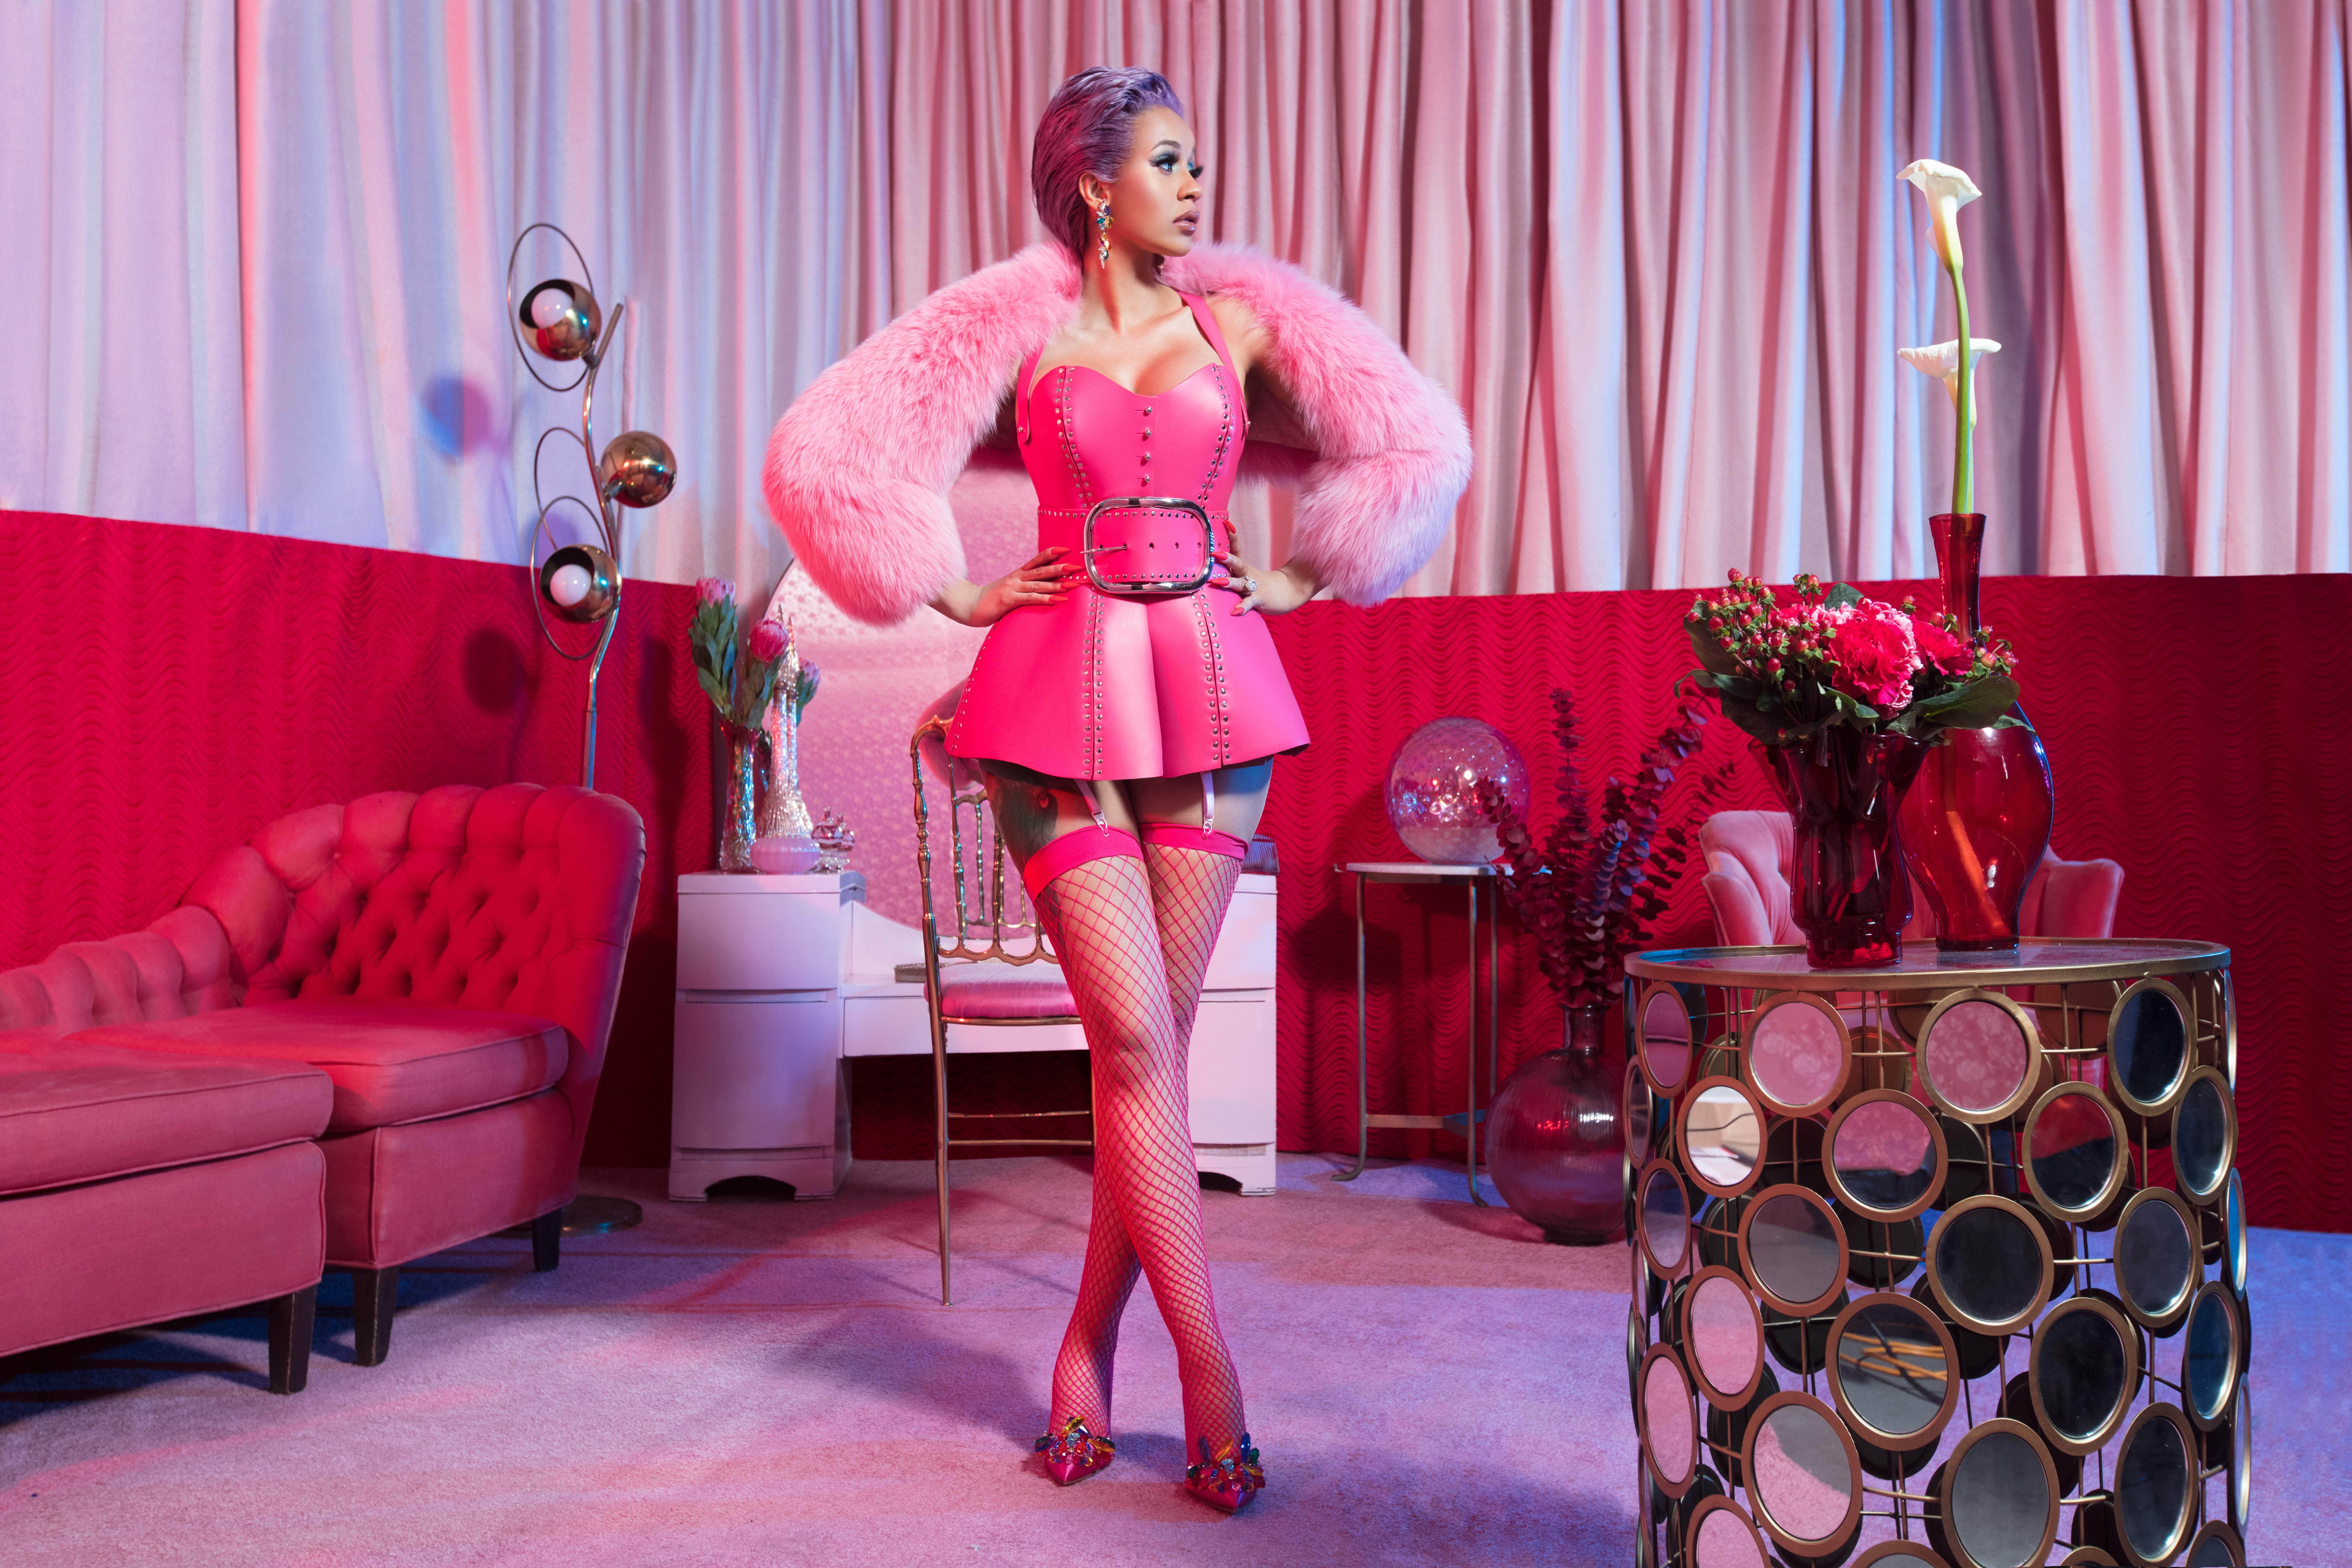 Cute Barbie Wallpapers 240x320 Cardi B Hd Music 4k Wallpapers Images Backgrounds